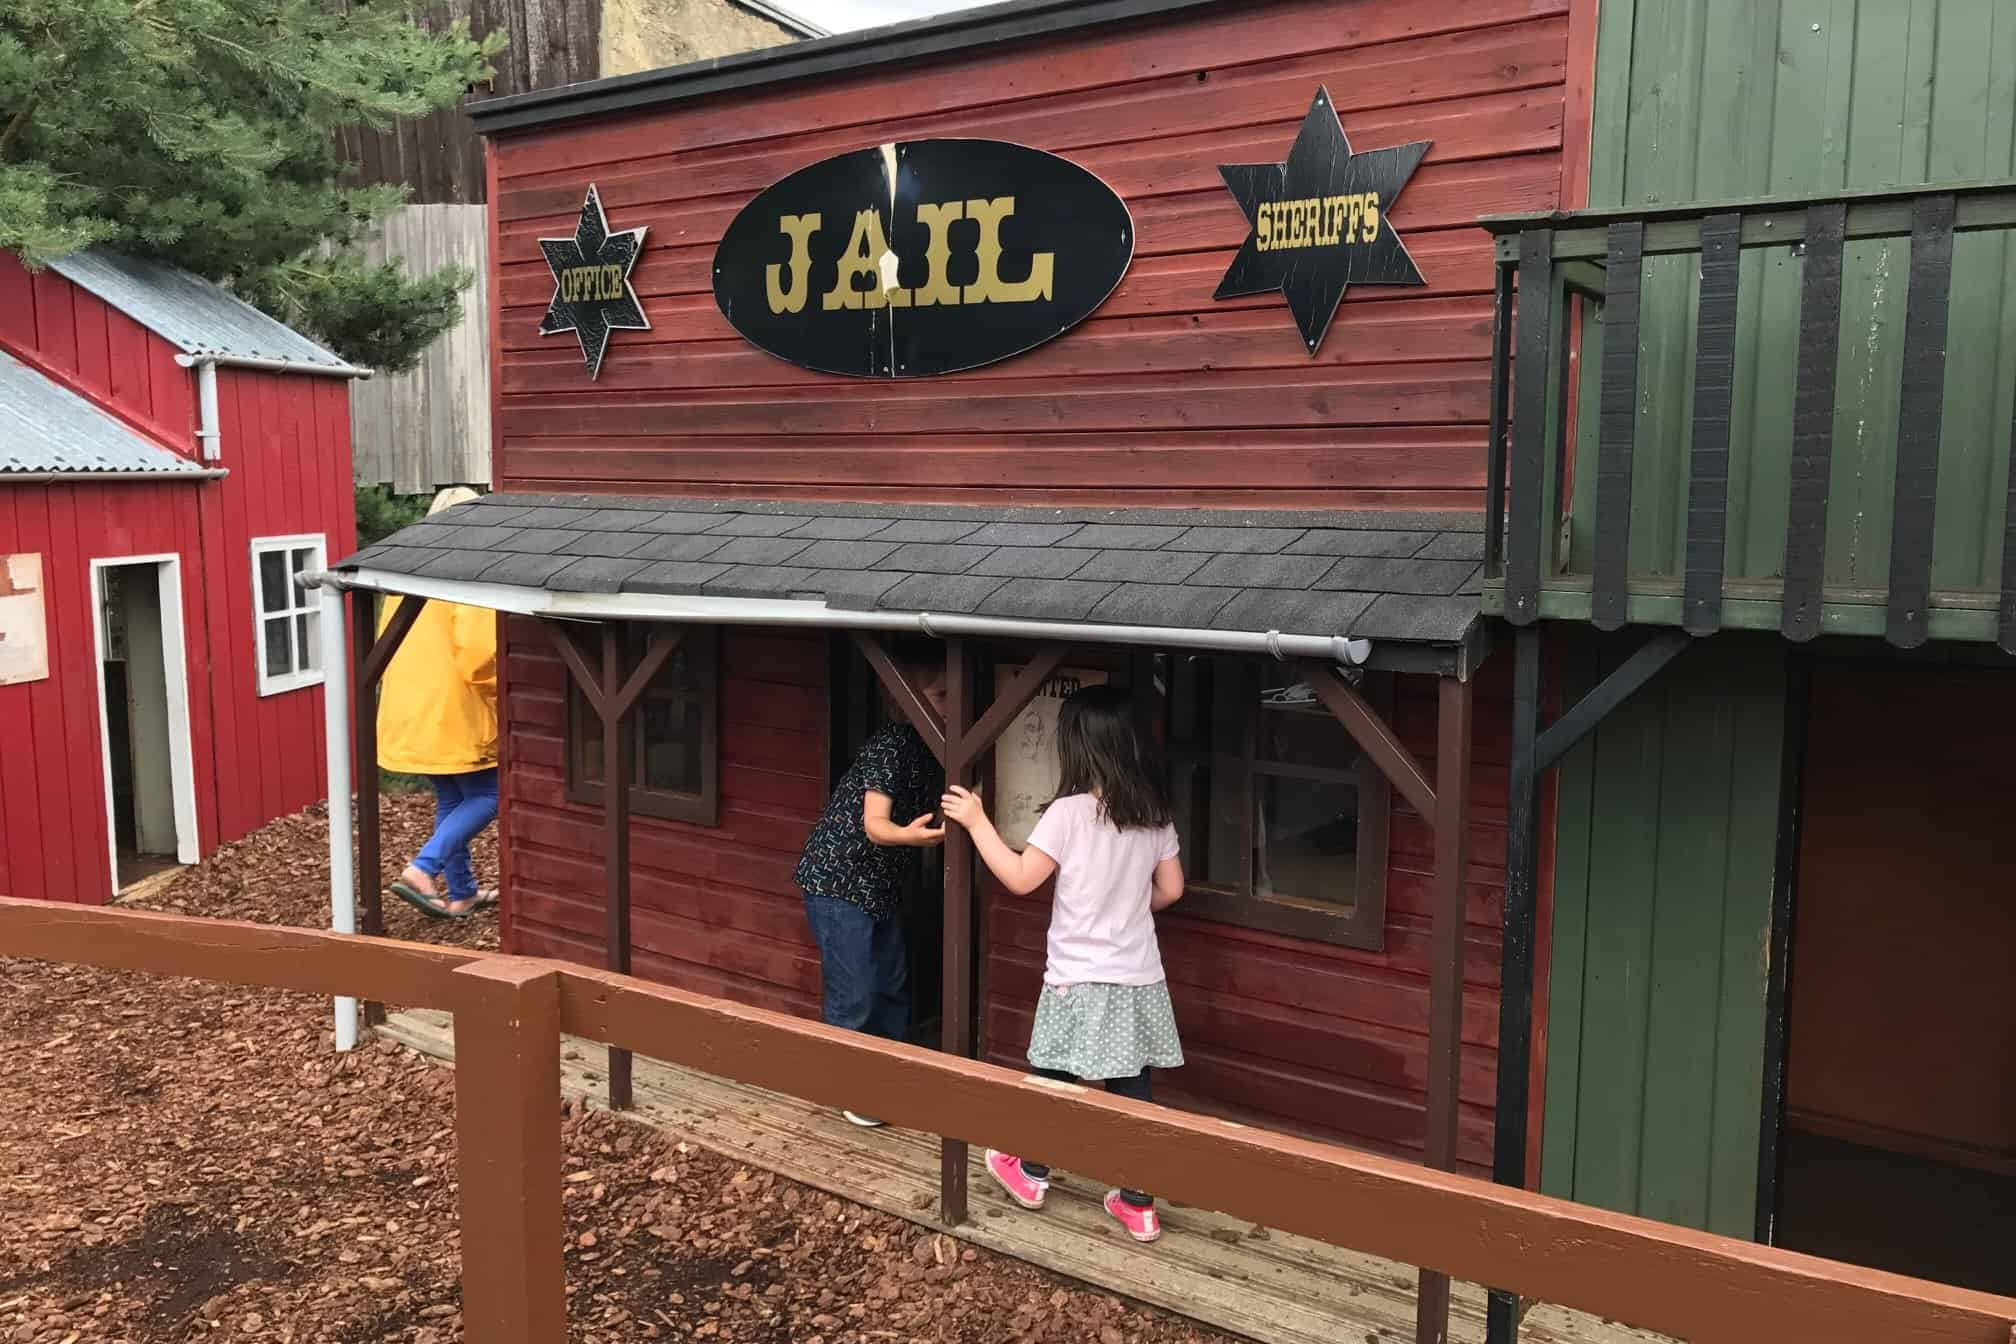 Jail at The Wild West part of Gulliver's Land Theme Park Milton Keynes